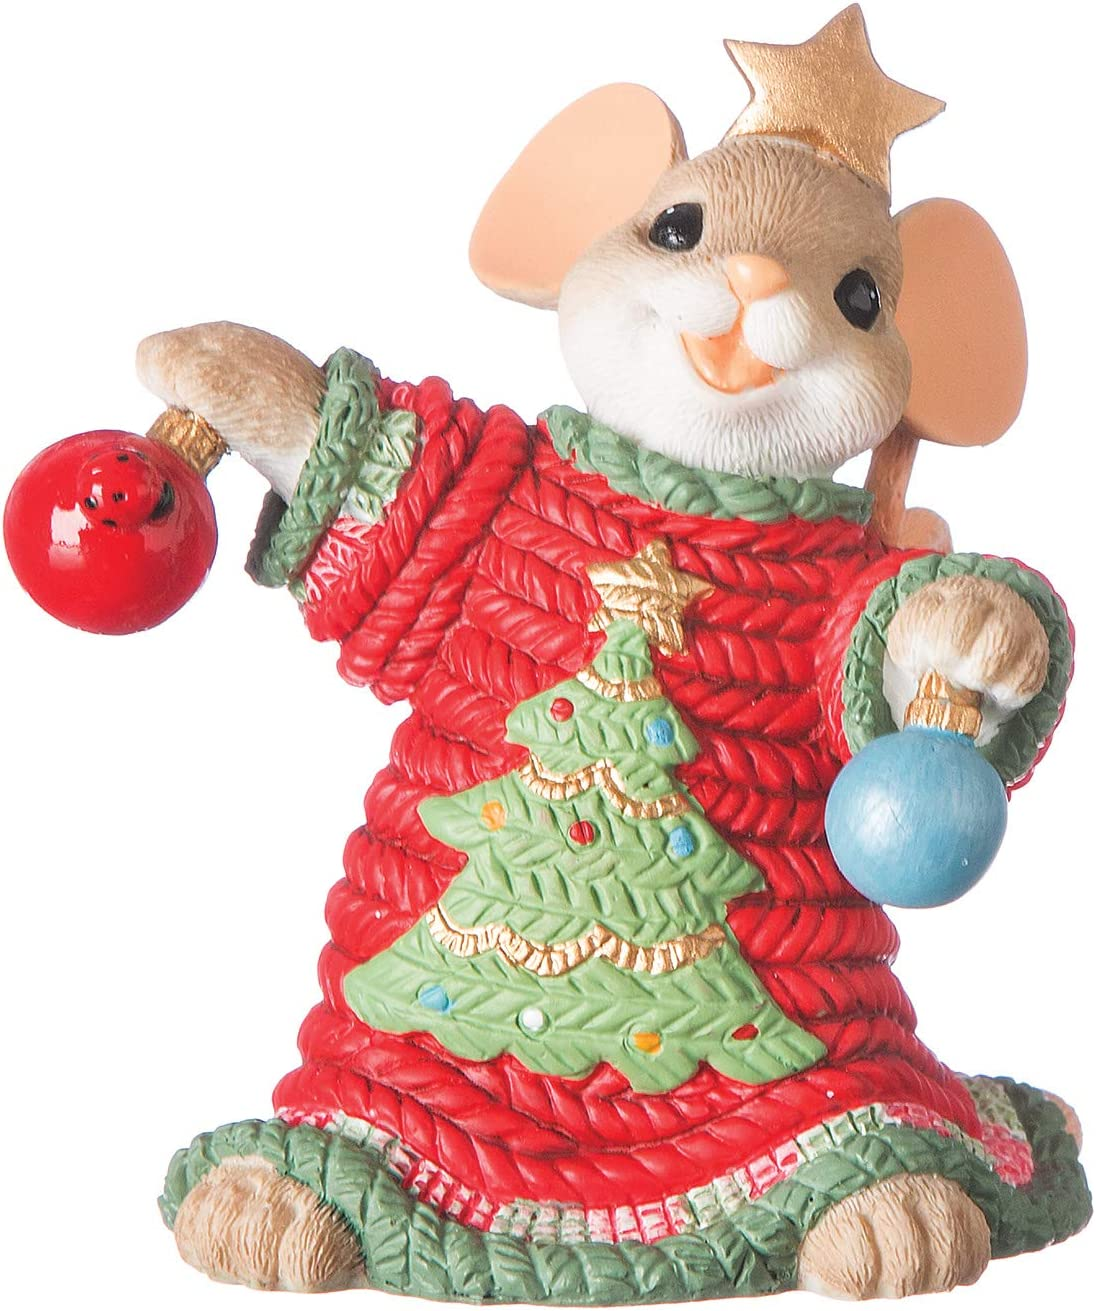 """Roman - Charming Tails Collection, Ugly Sweater Figure, 3"""" H, Resin and Stone, Durable, Collectibles, Cute Decorative Figurine, Home, Decor"""